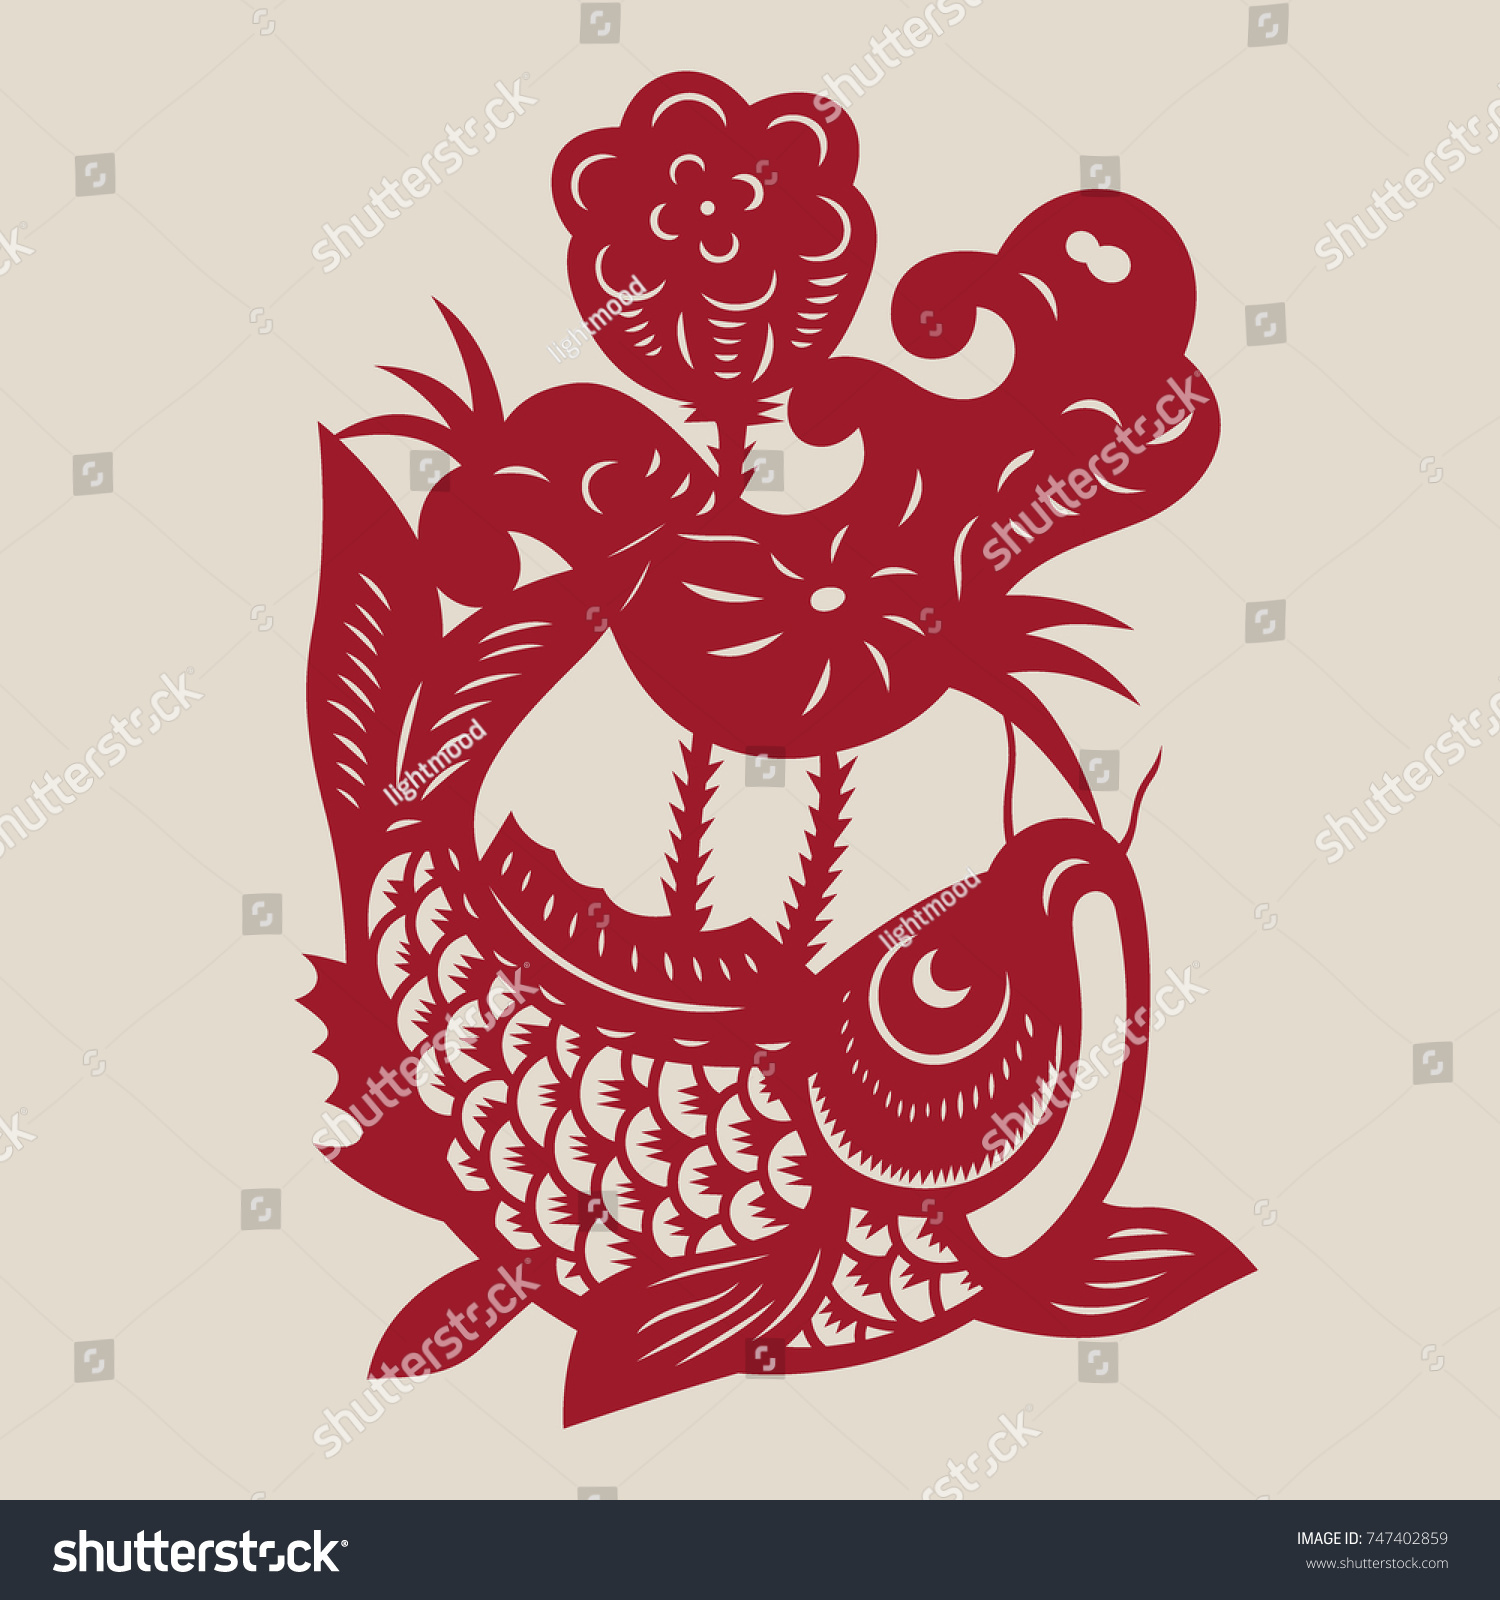 Fish Chinese Traditional Papercut Art Stock Vector 747402859 ...